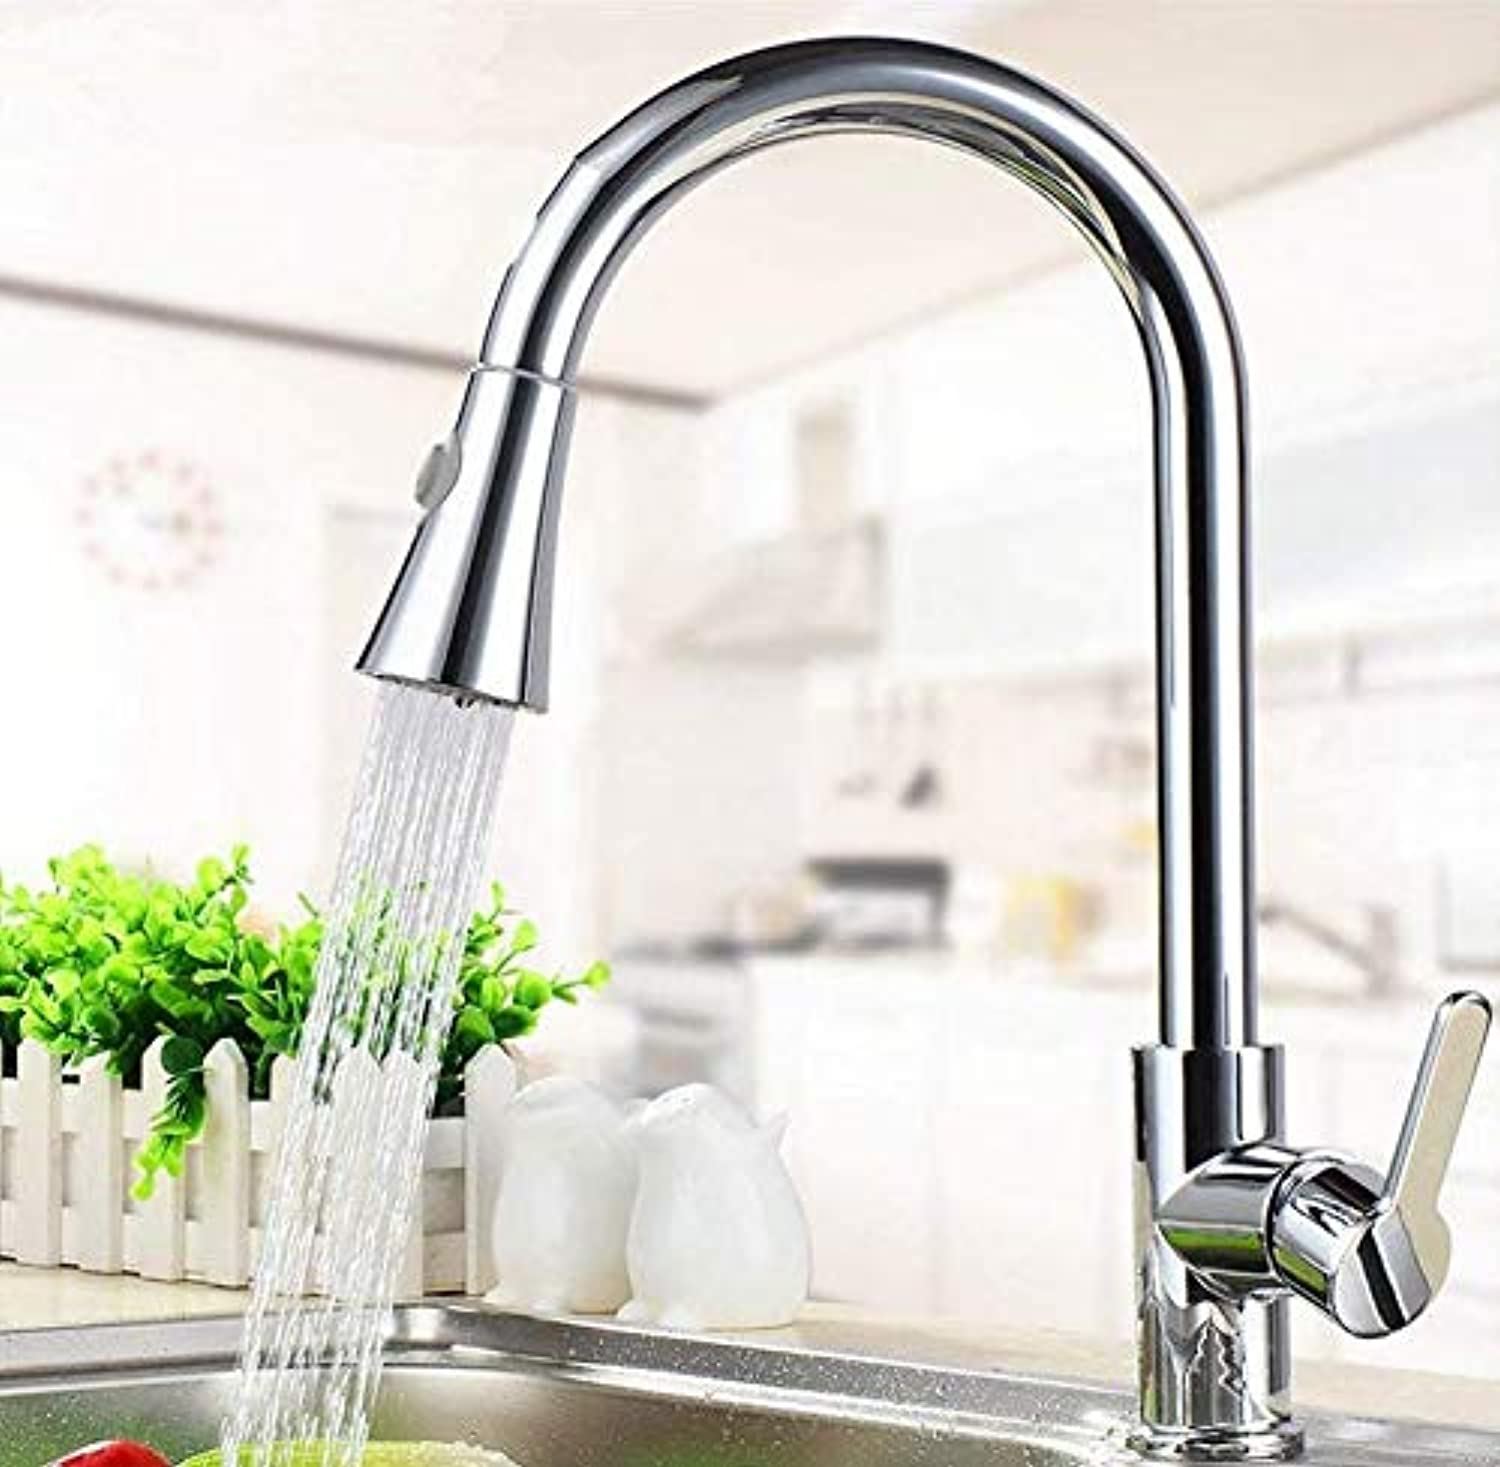 Kitchen Fauct Kitchen Sink Taps Kitchen Sink Tap Solid Brass Spout Head Sink Pull-Out Faucet Telescopic Basin Mixer Tap Sink Faucet Hot and Cold (color   -, Size   -)